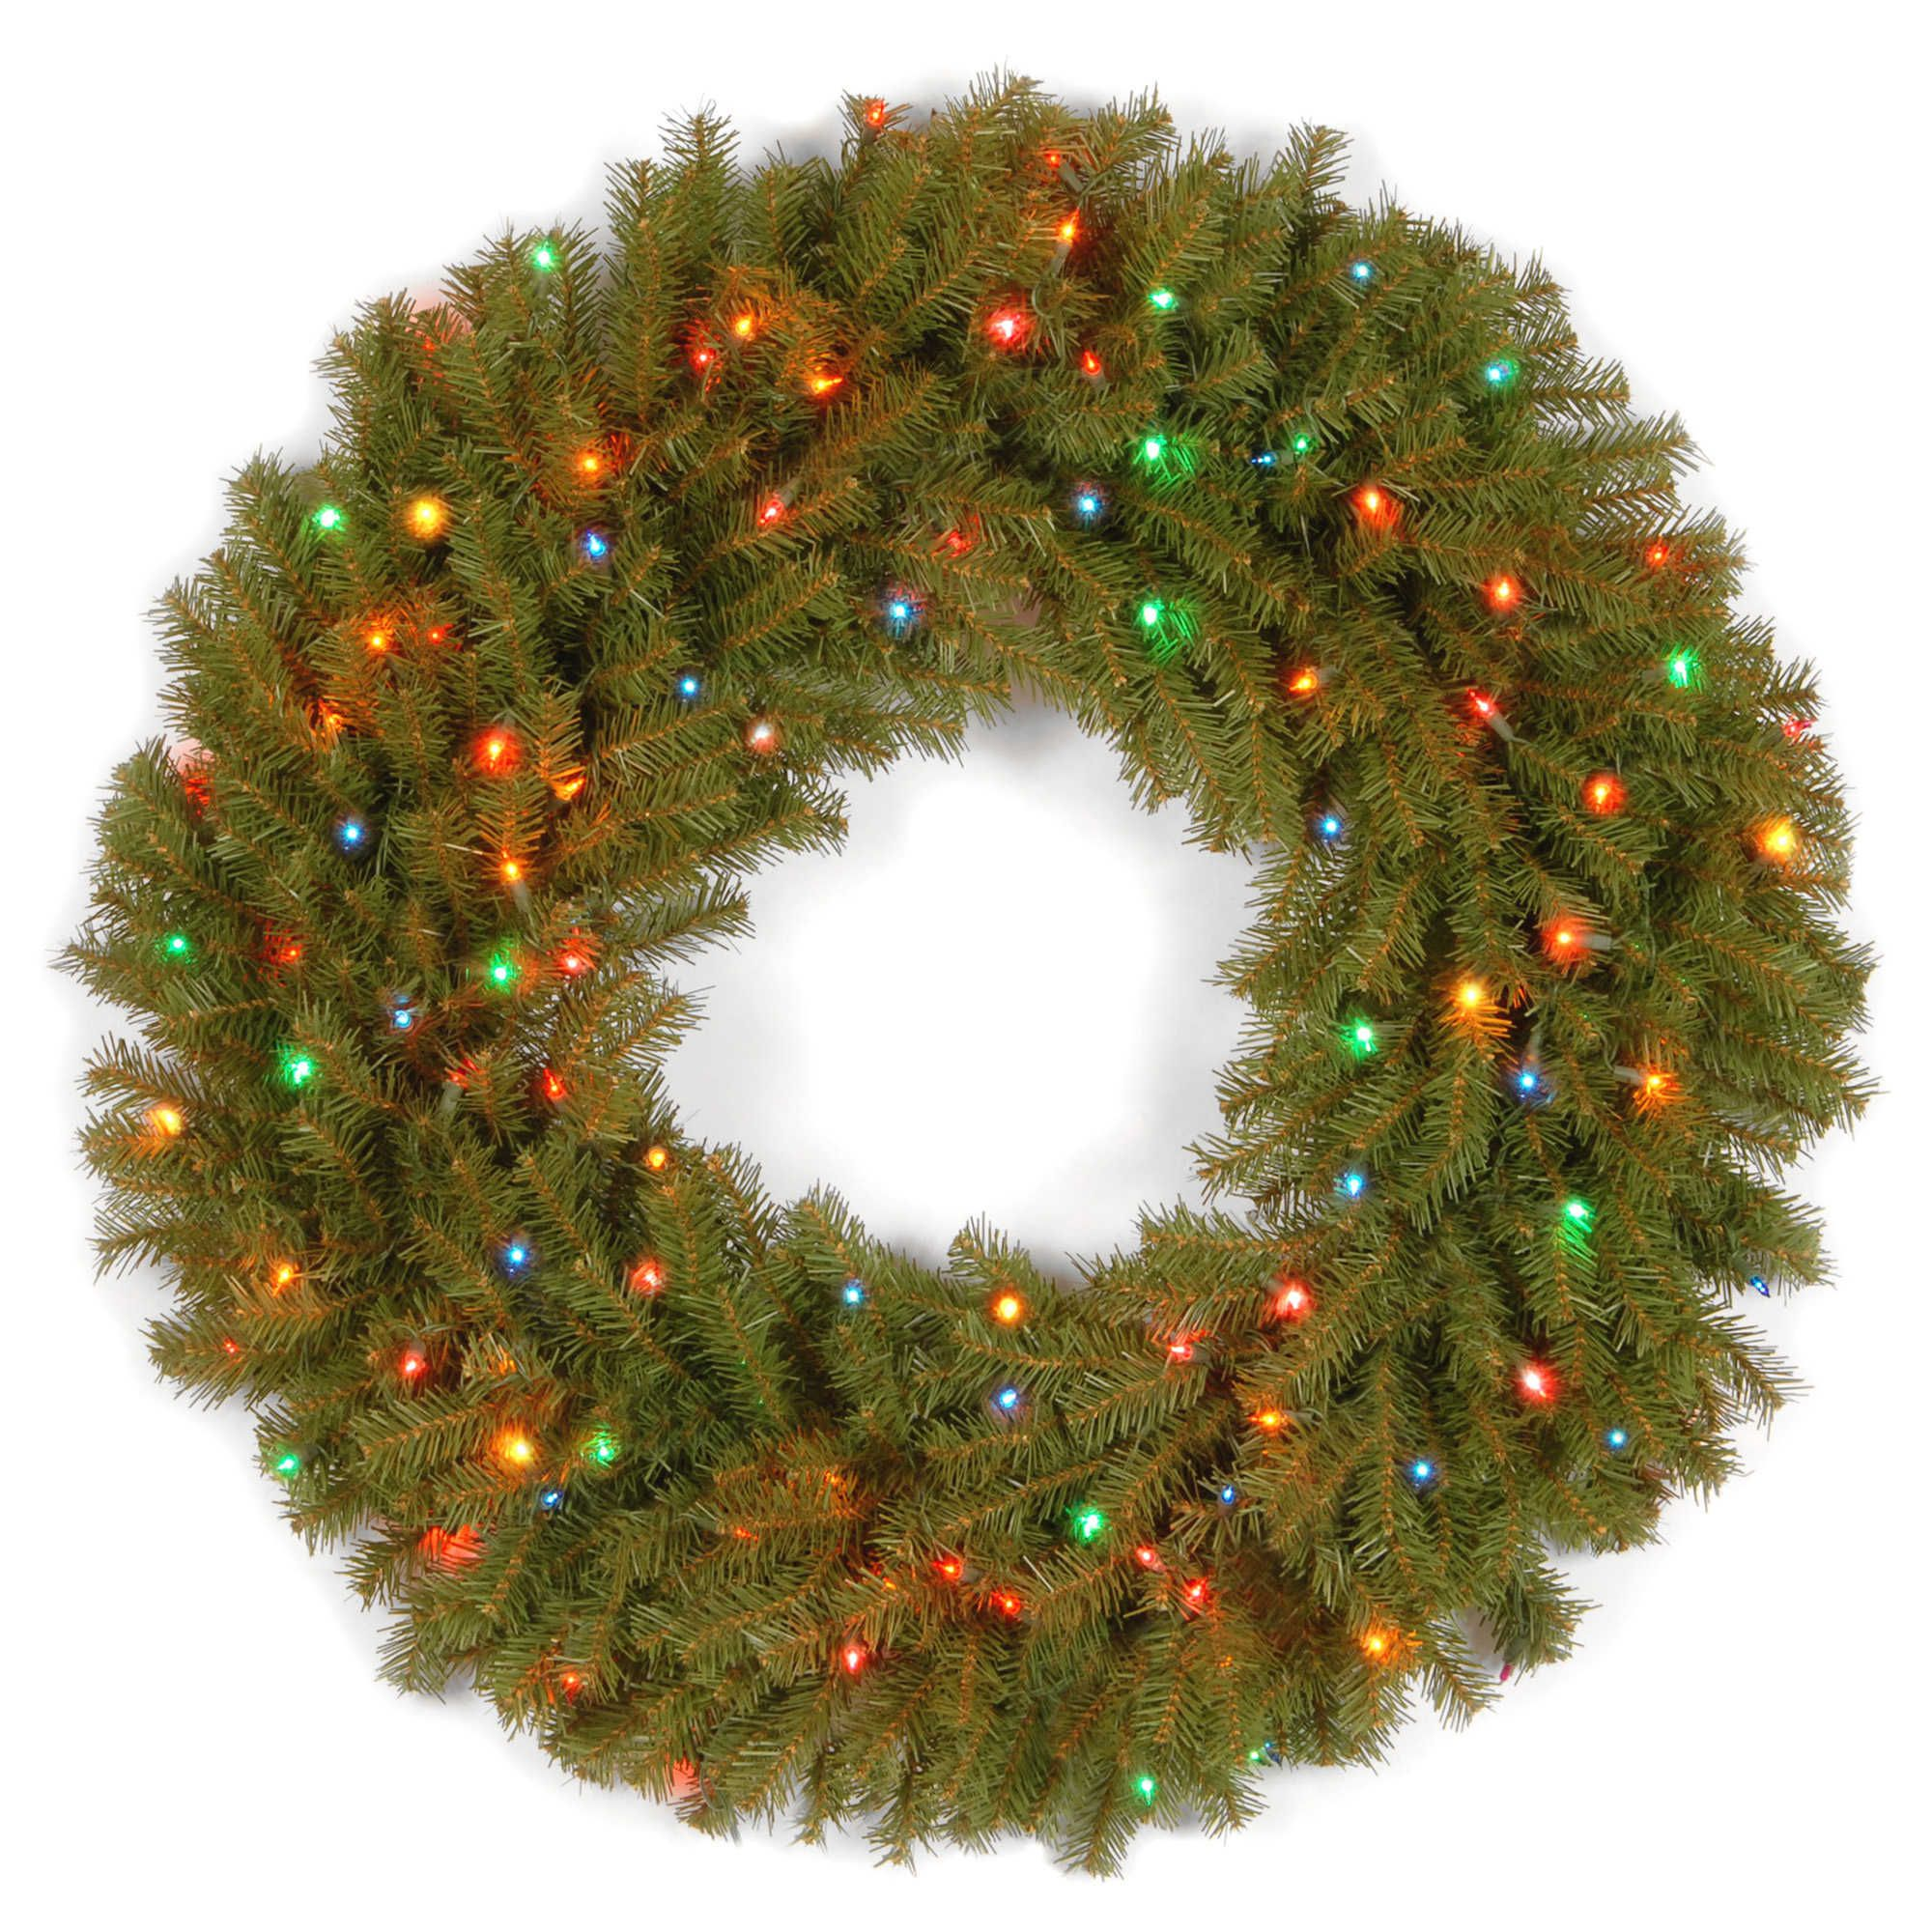 Outdoor Lighted Wreath National Tree Company 30Inch Prelit Norwood Fir Wreath  Christmas